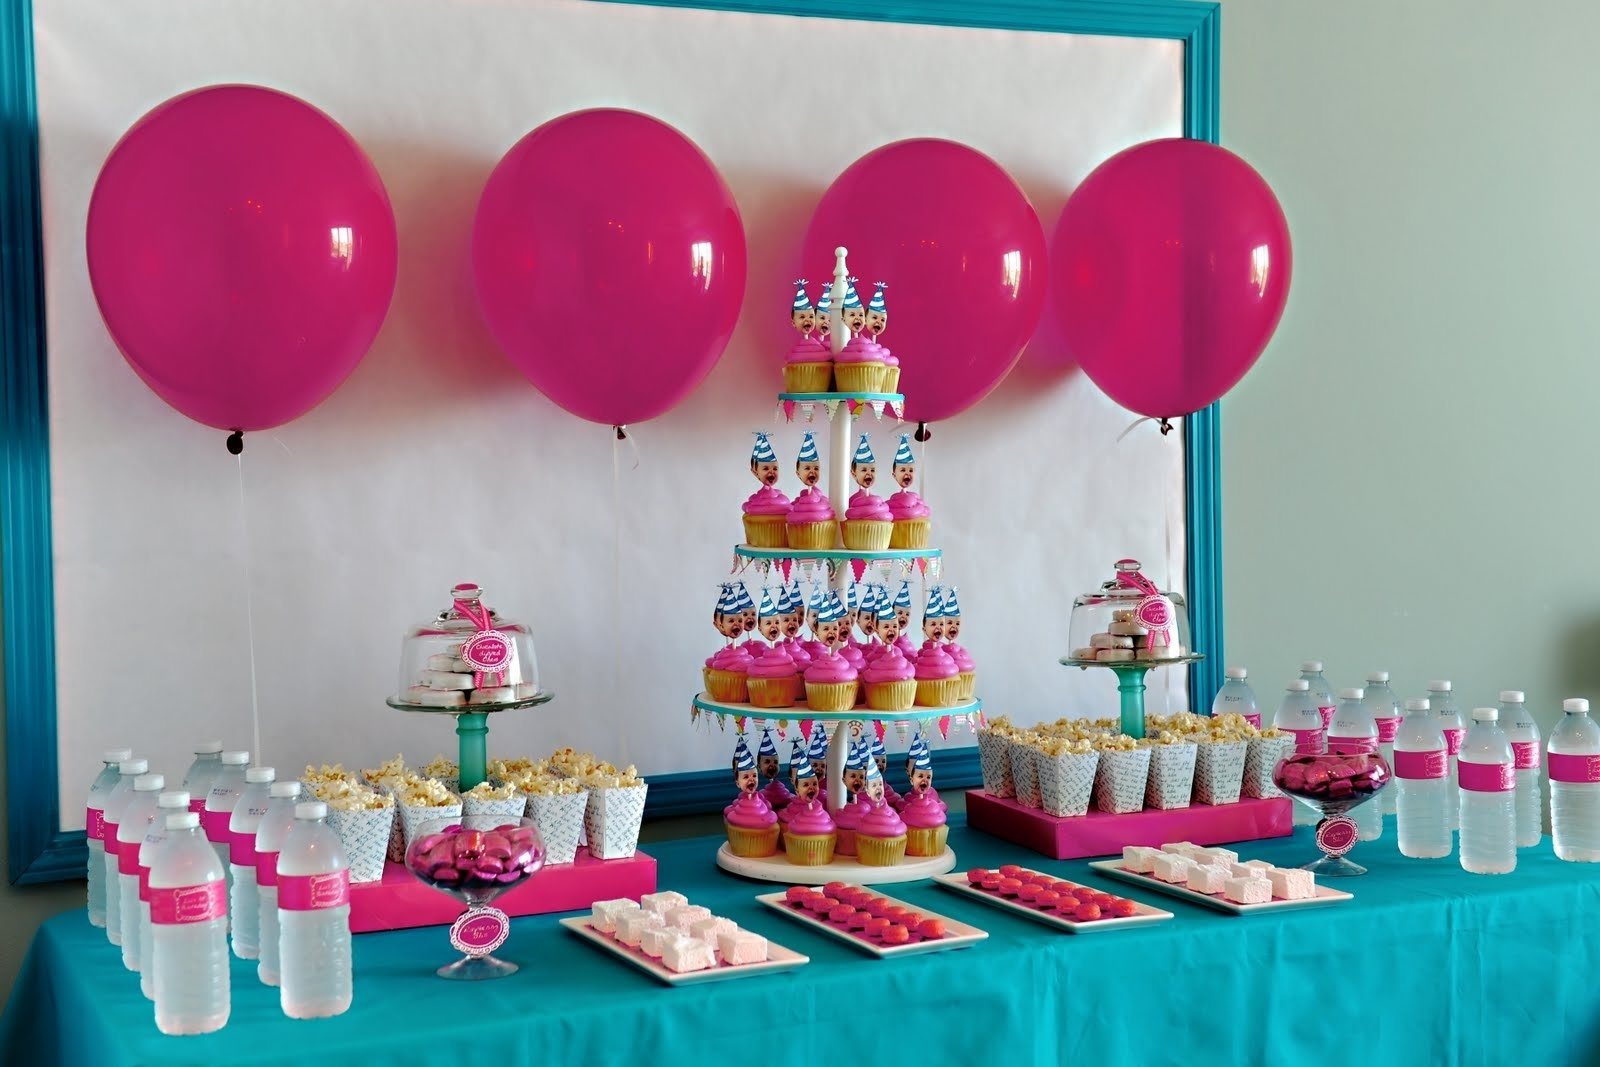 10 Awesome Ten Year Old Birthday Party Ideas elle belle creative one year old in a flash the dessert table 3 2020